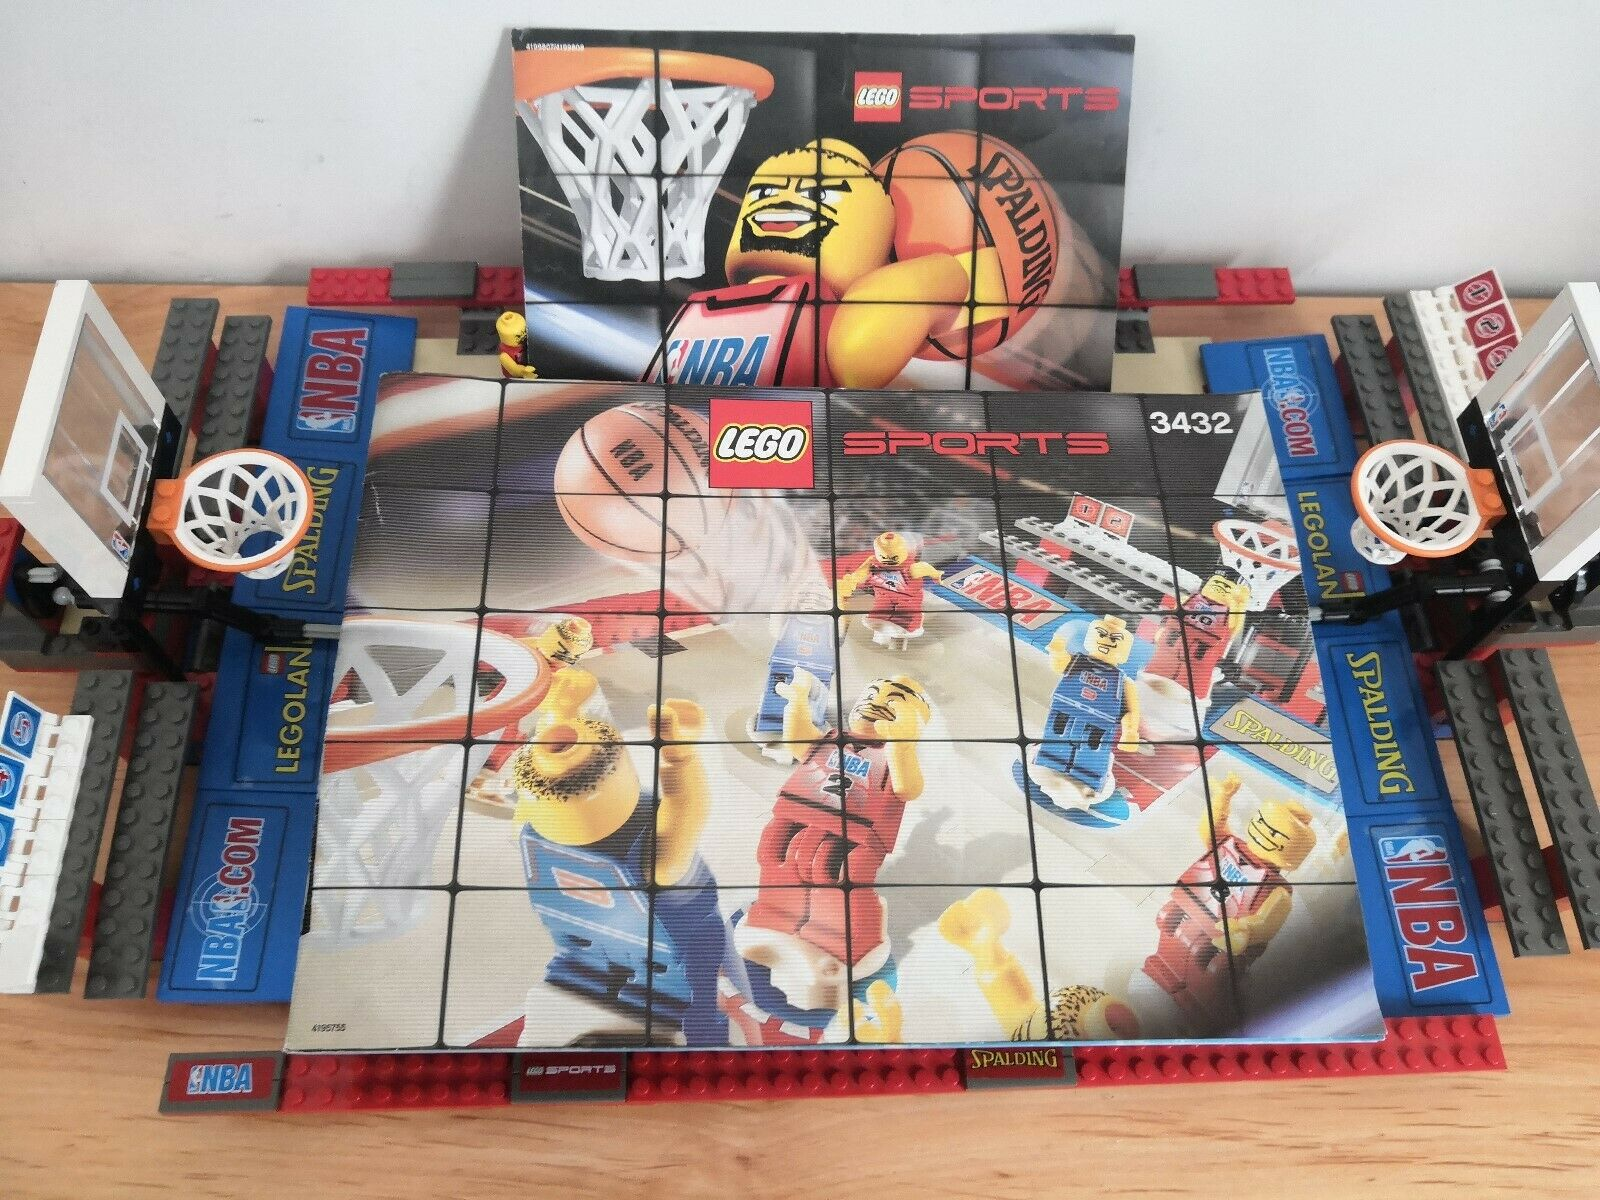 LEGO 3432 Street Basketball NBA with 15 Players with Cards